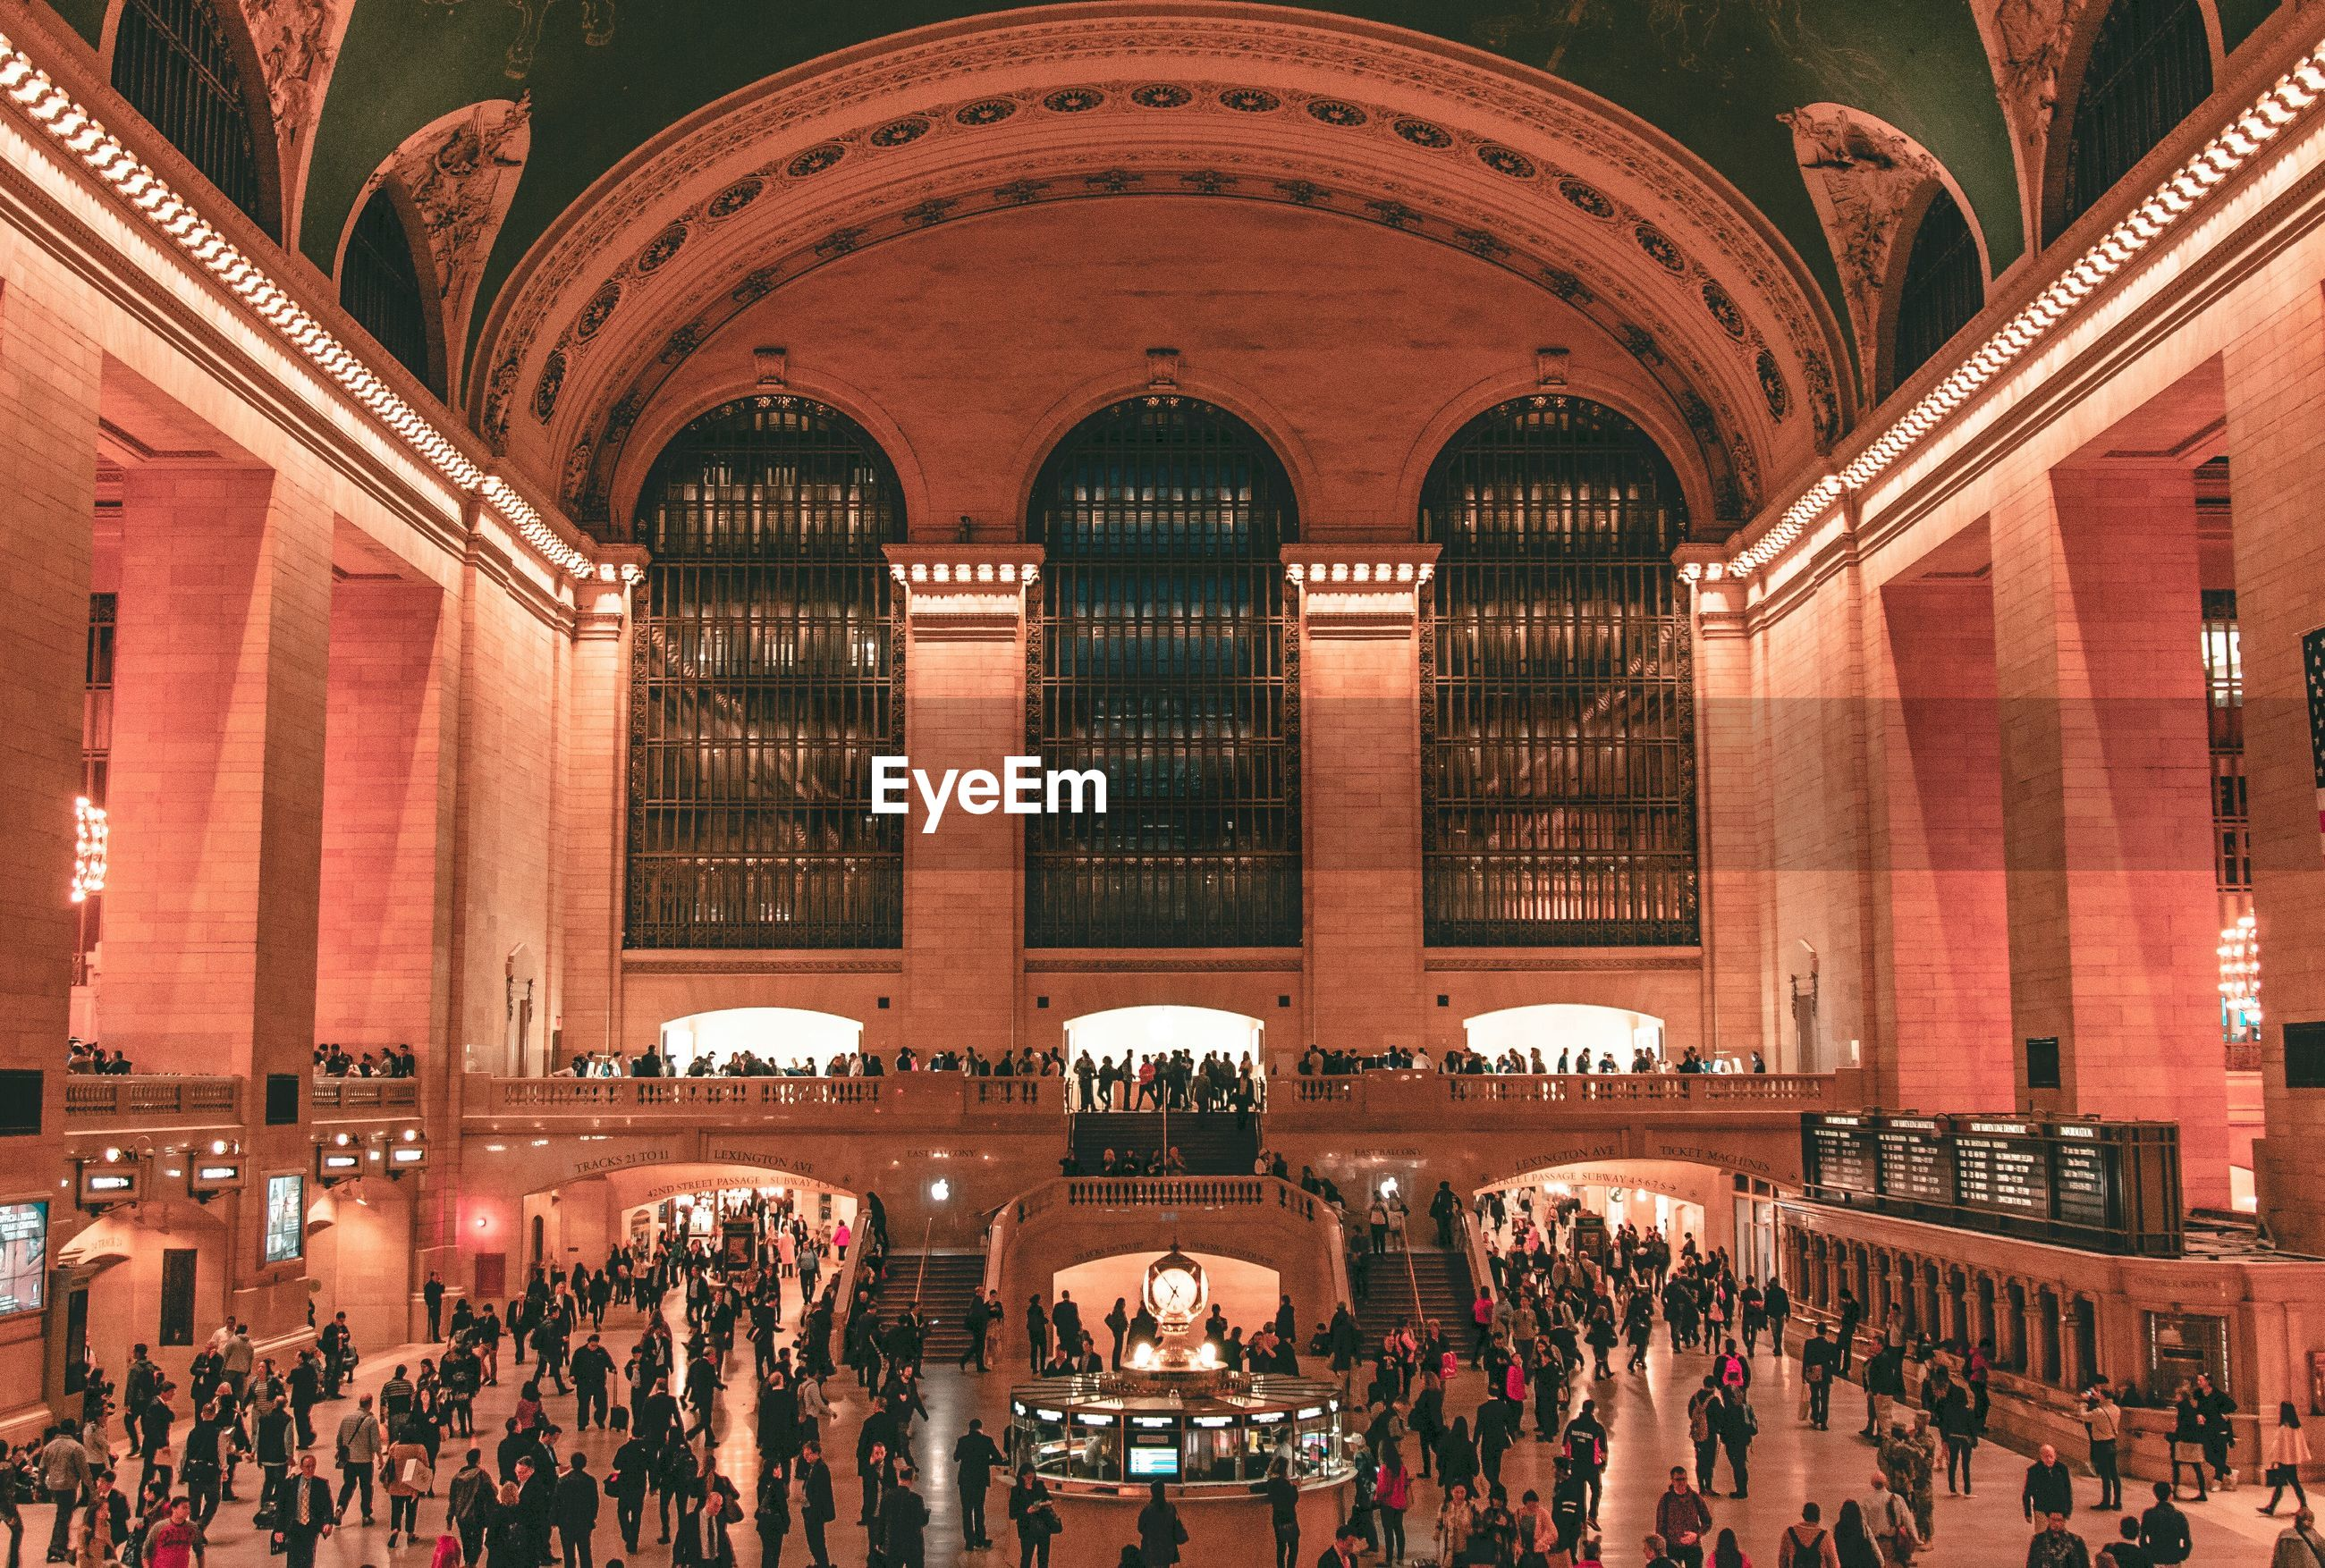 High angle view of crowd in grand central station